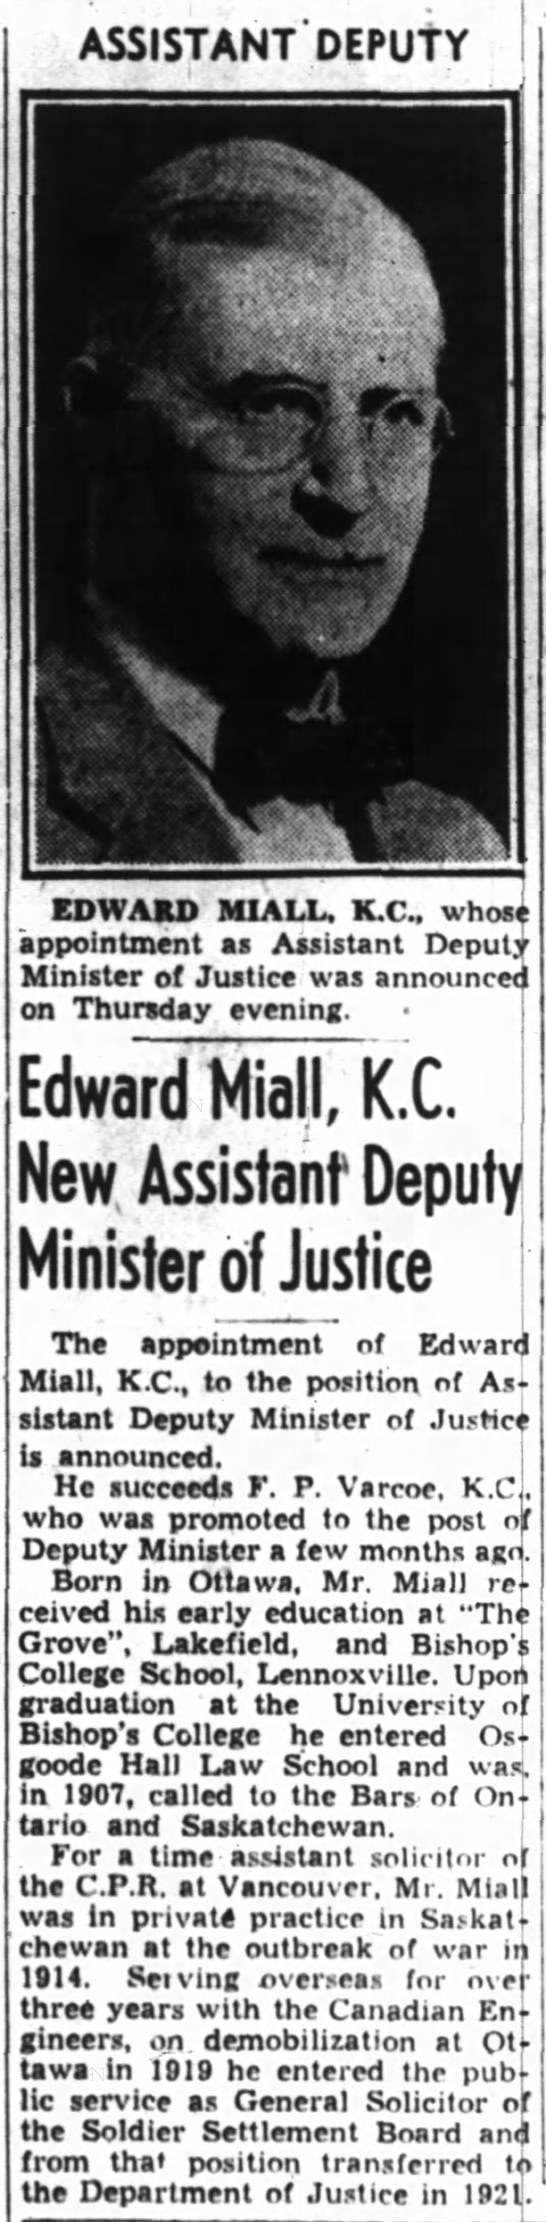 Edward Miall appointed ADM Justice Ottawa Journal March 20, 1942 -